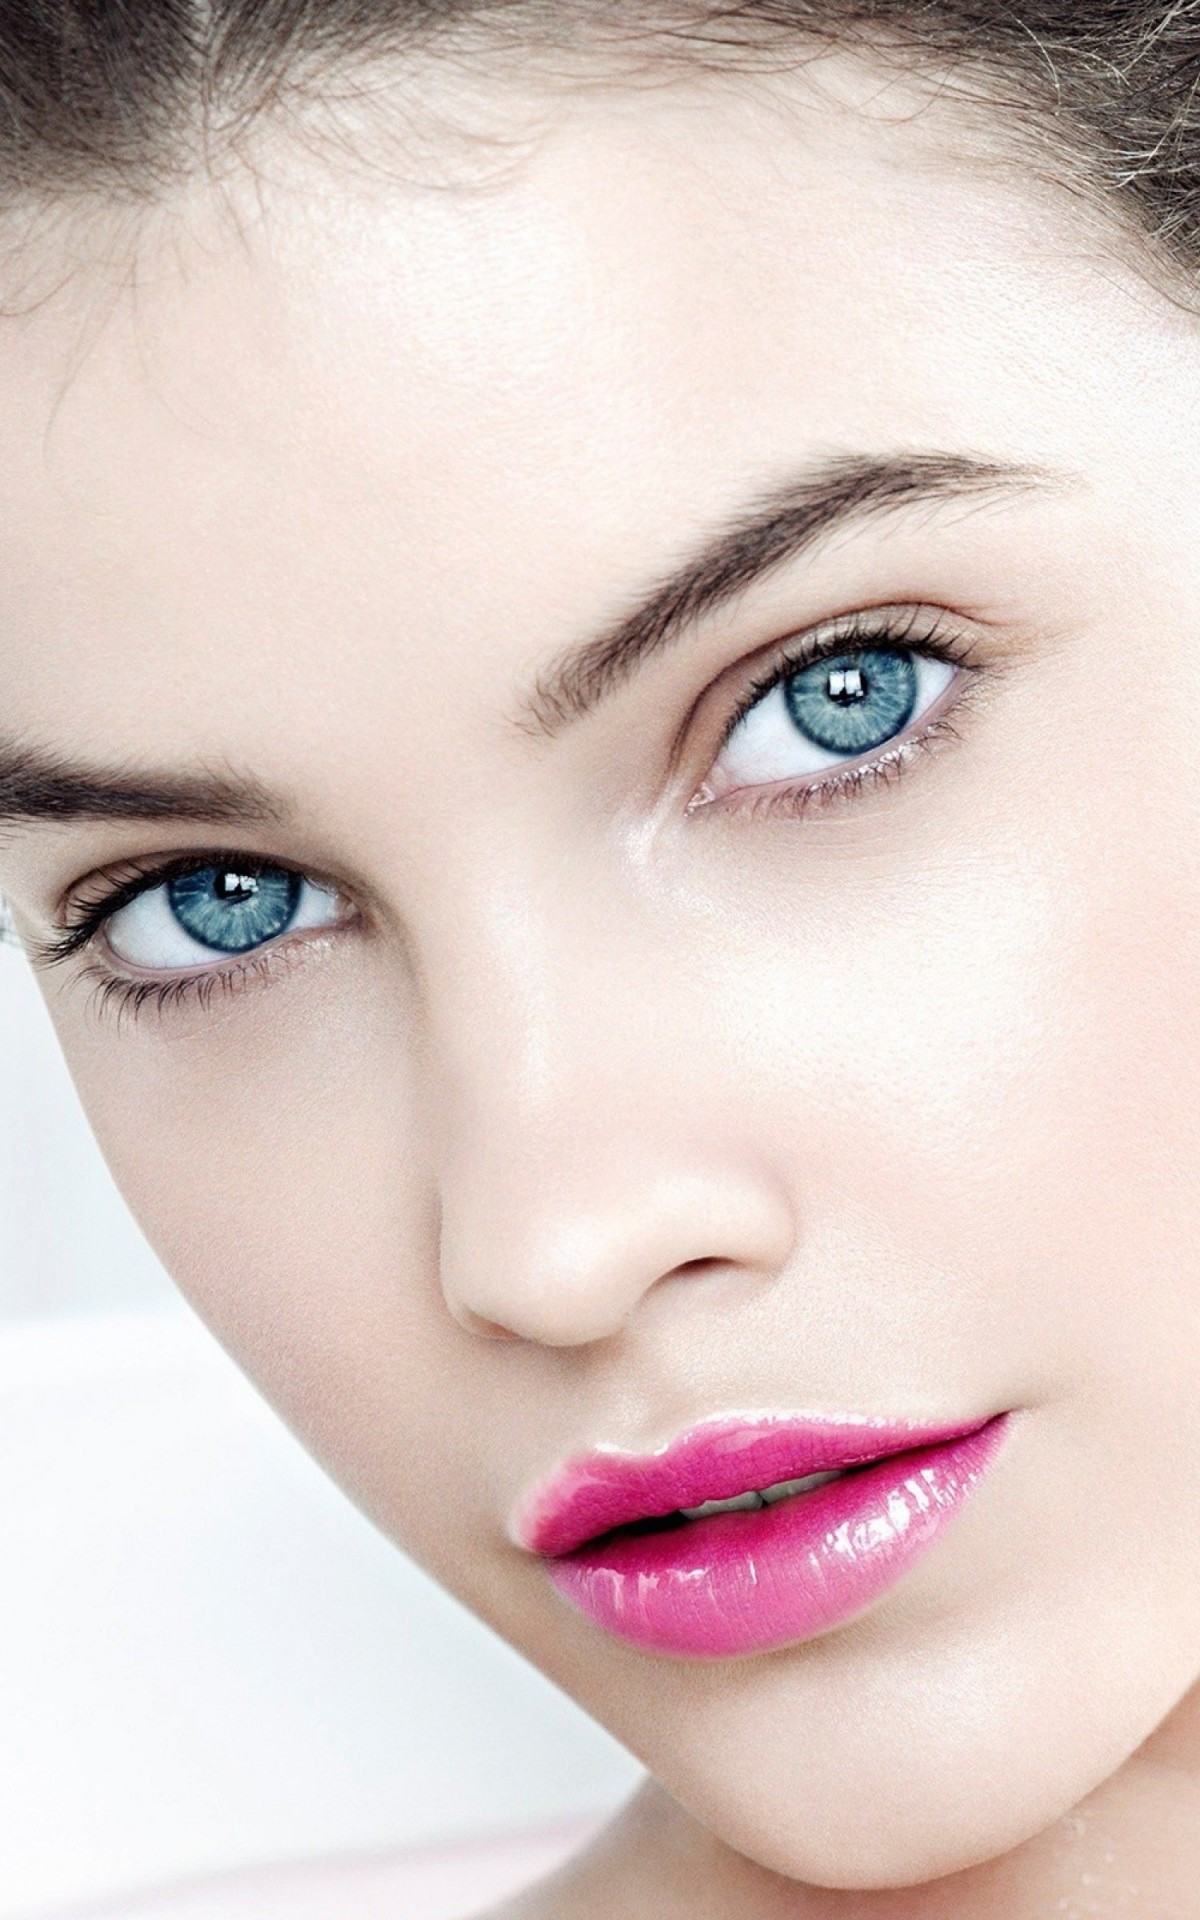 Barbara Palvin Wallpaper for Amazon Kindle Fire HDX